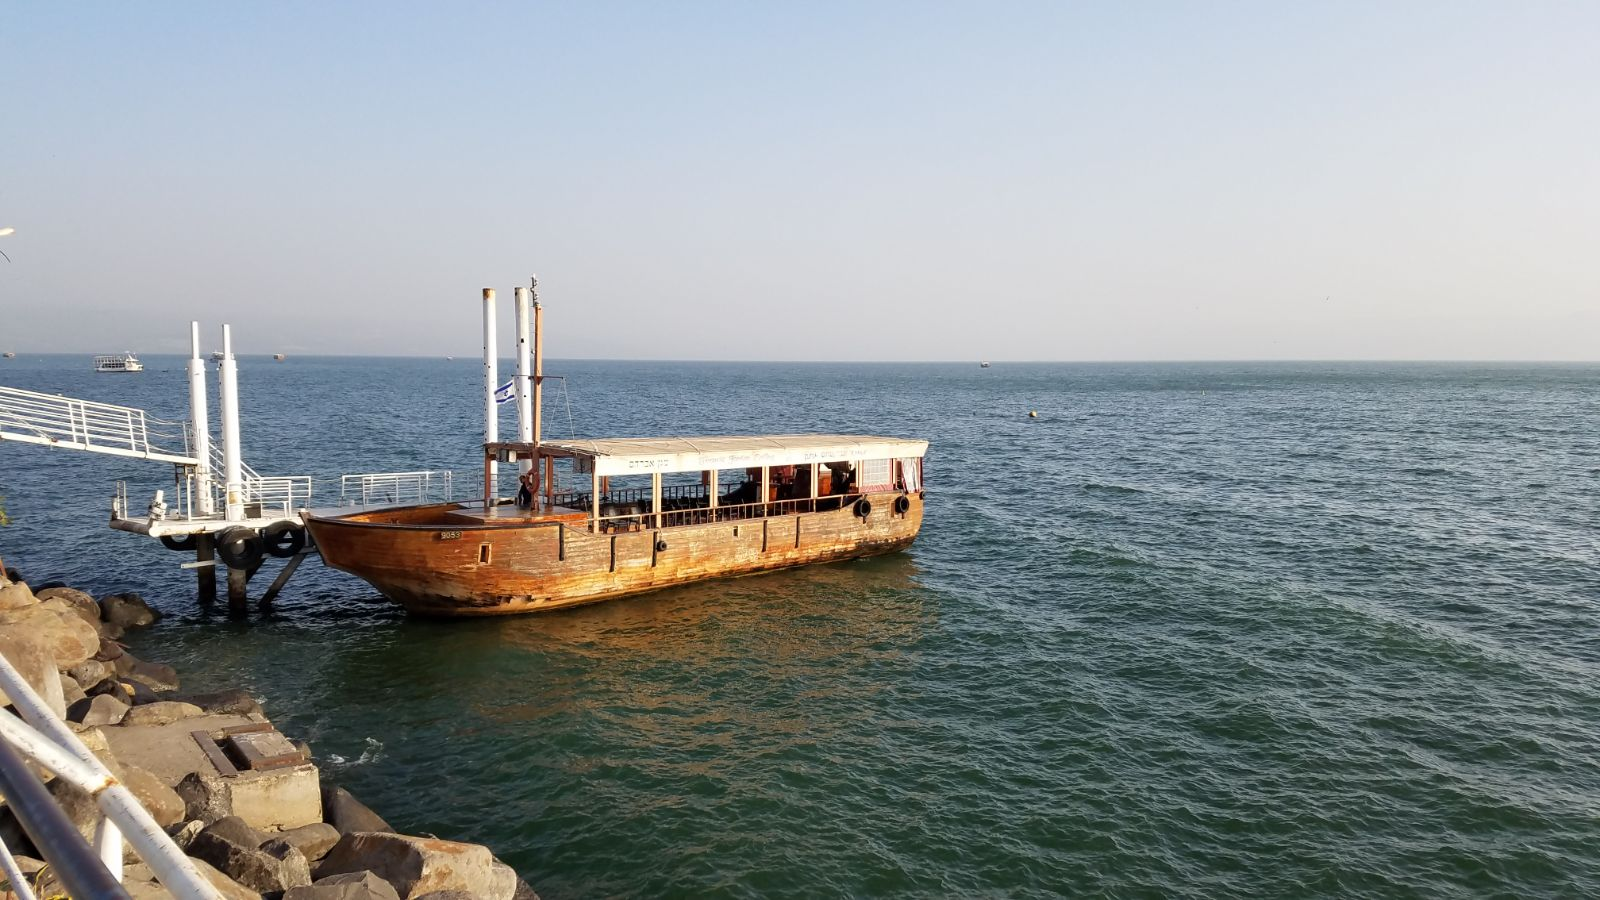 Boat ride on the Sea of Galilee2-2019012